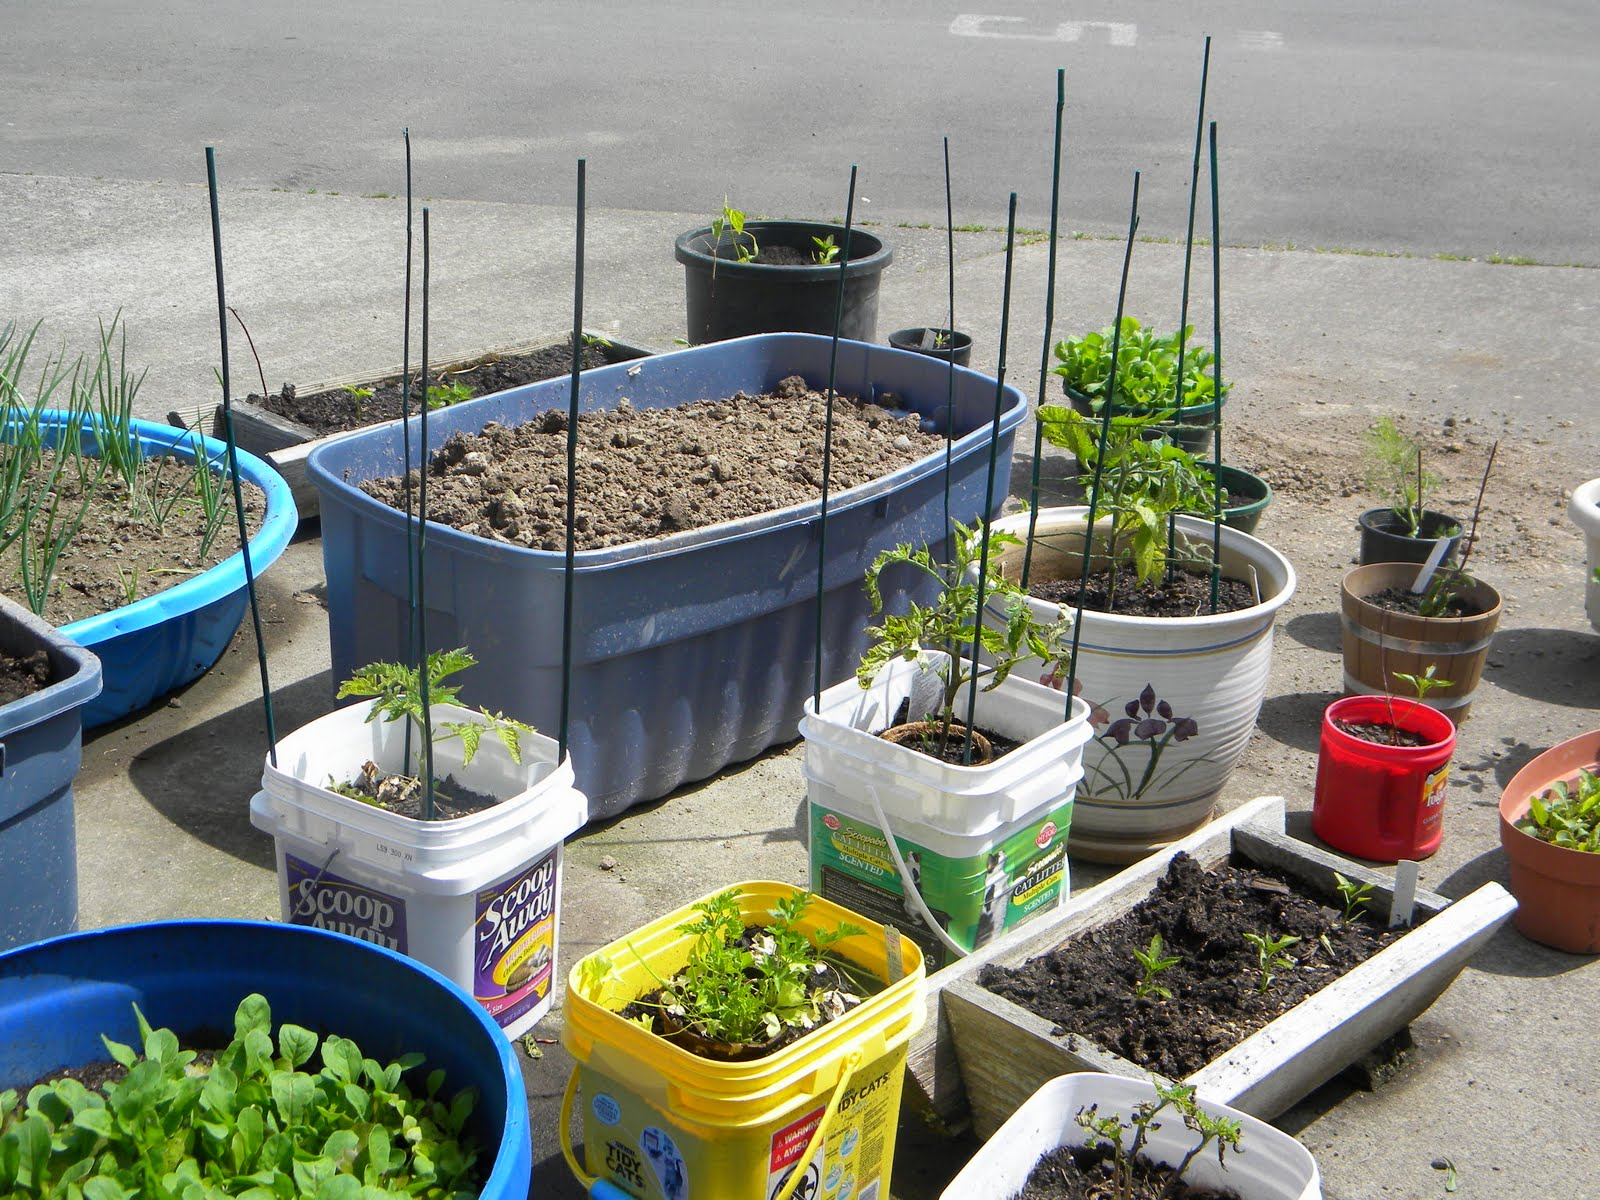 Recycled container garden part ii container gardening in an rv - Recycled containers for gardening ...